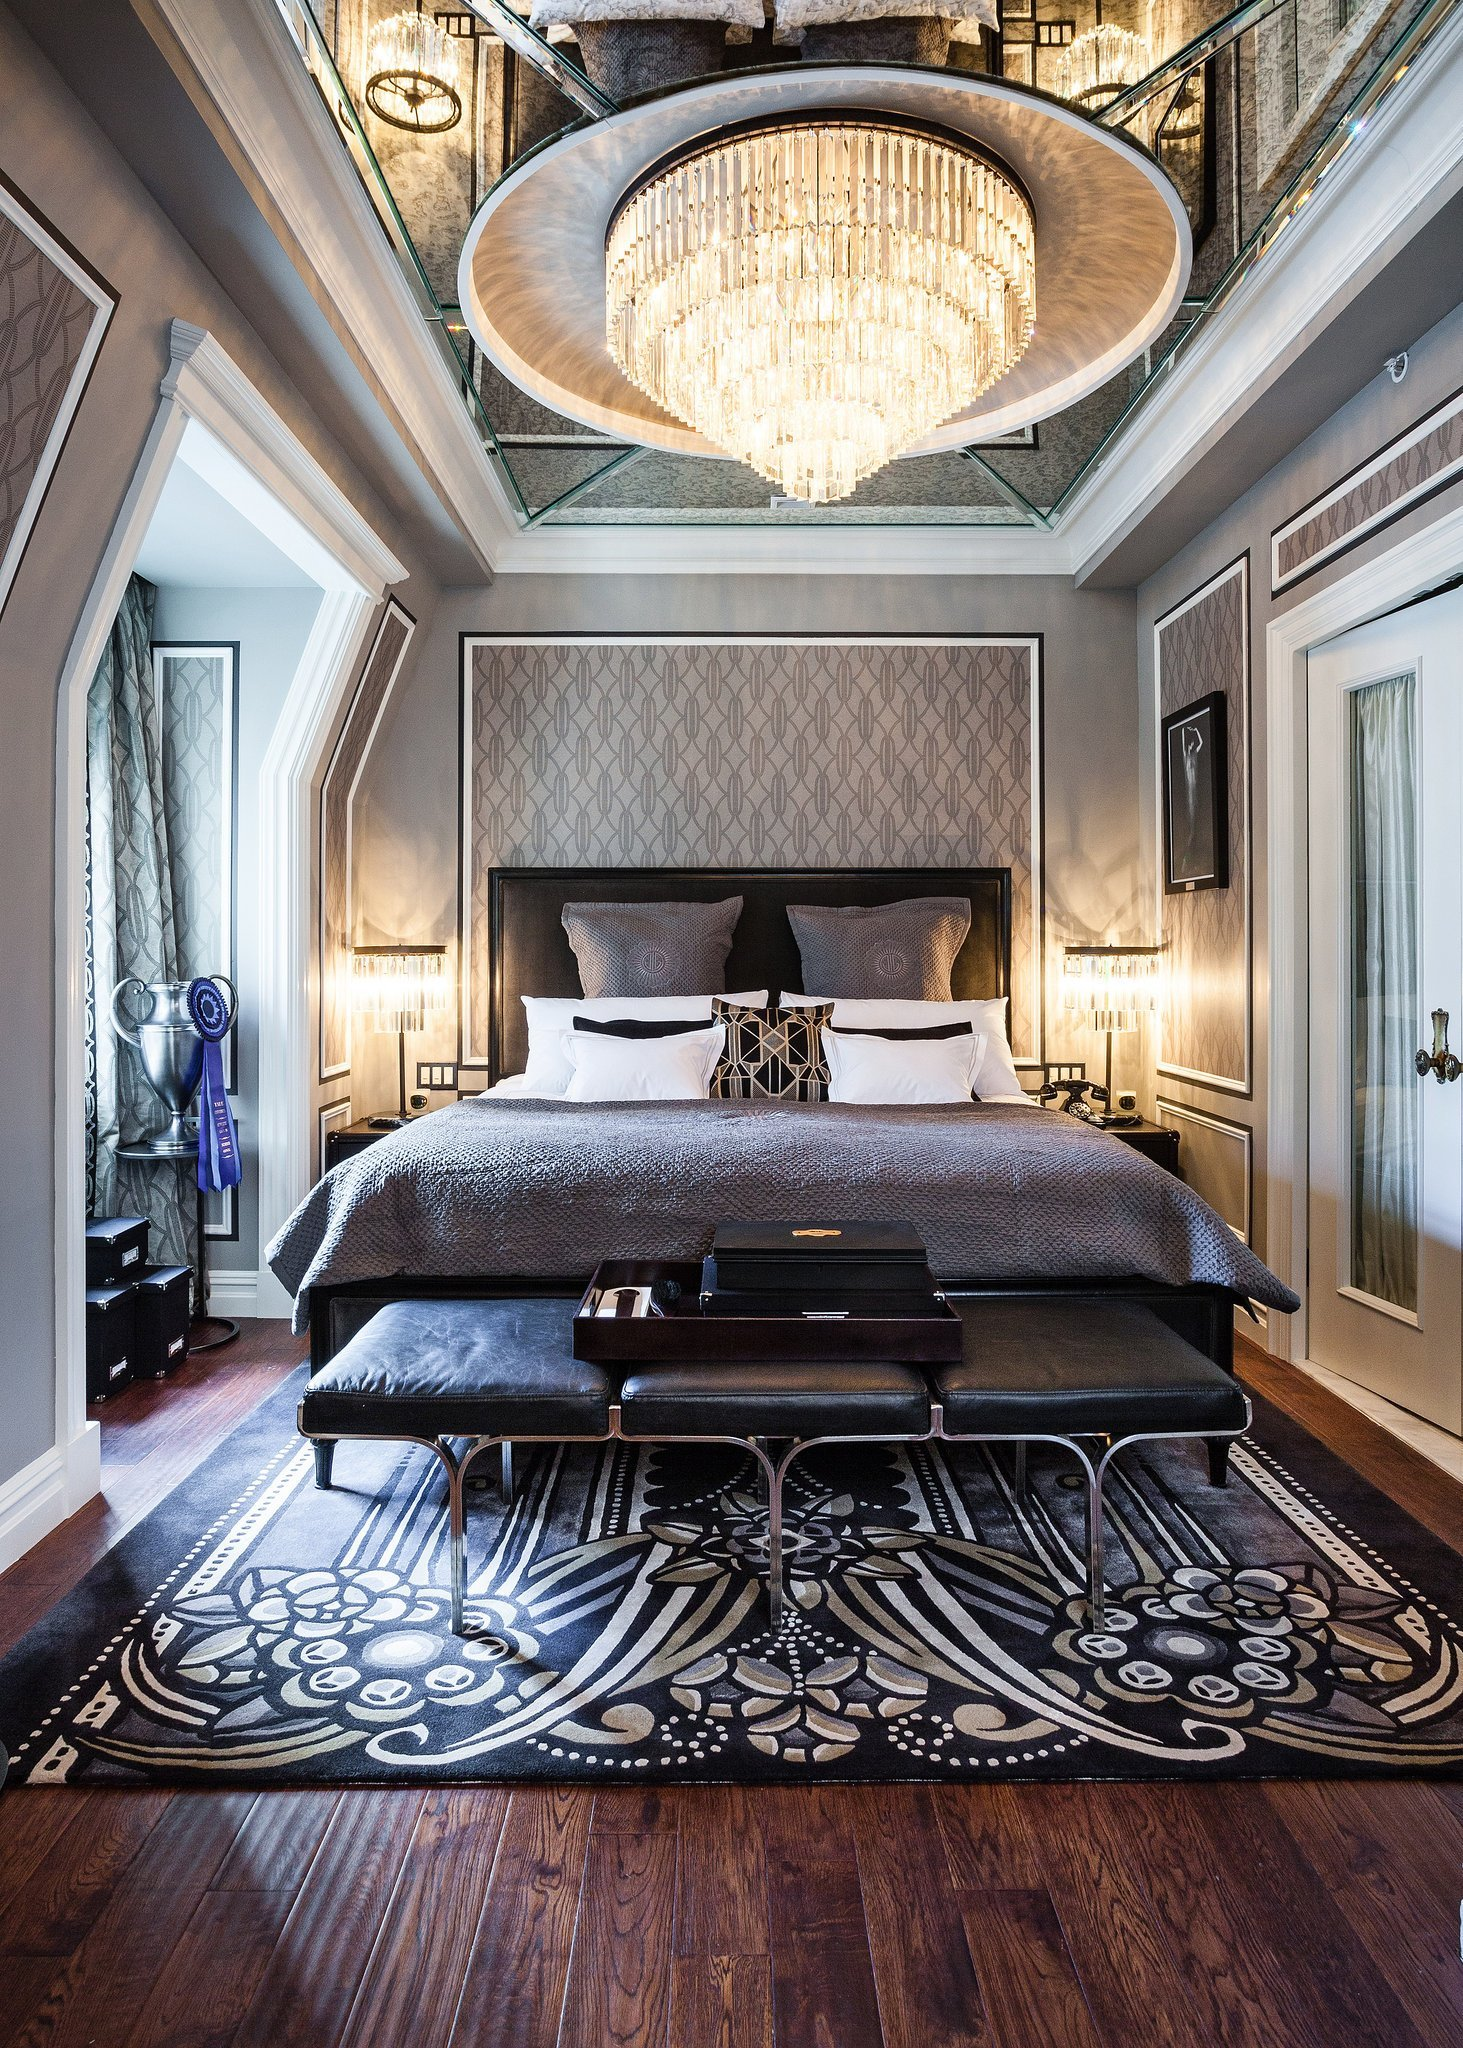 Best Great Gatsby Themed Bedroom 28 Images Opulent Great With Pictures